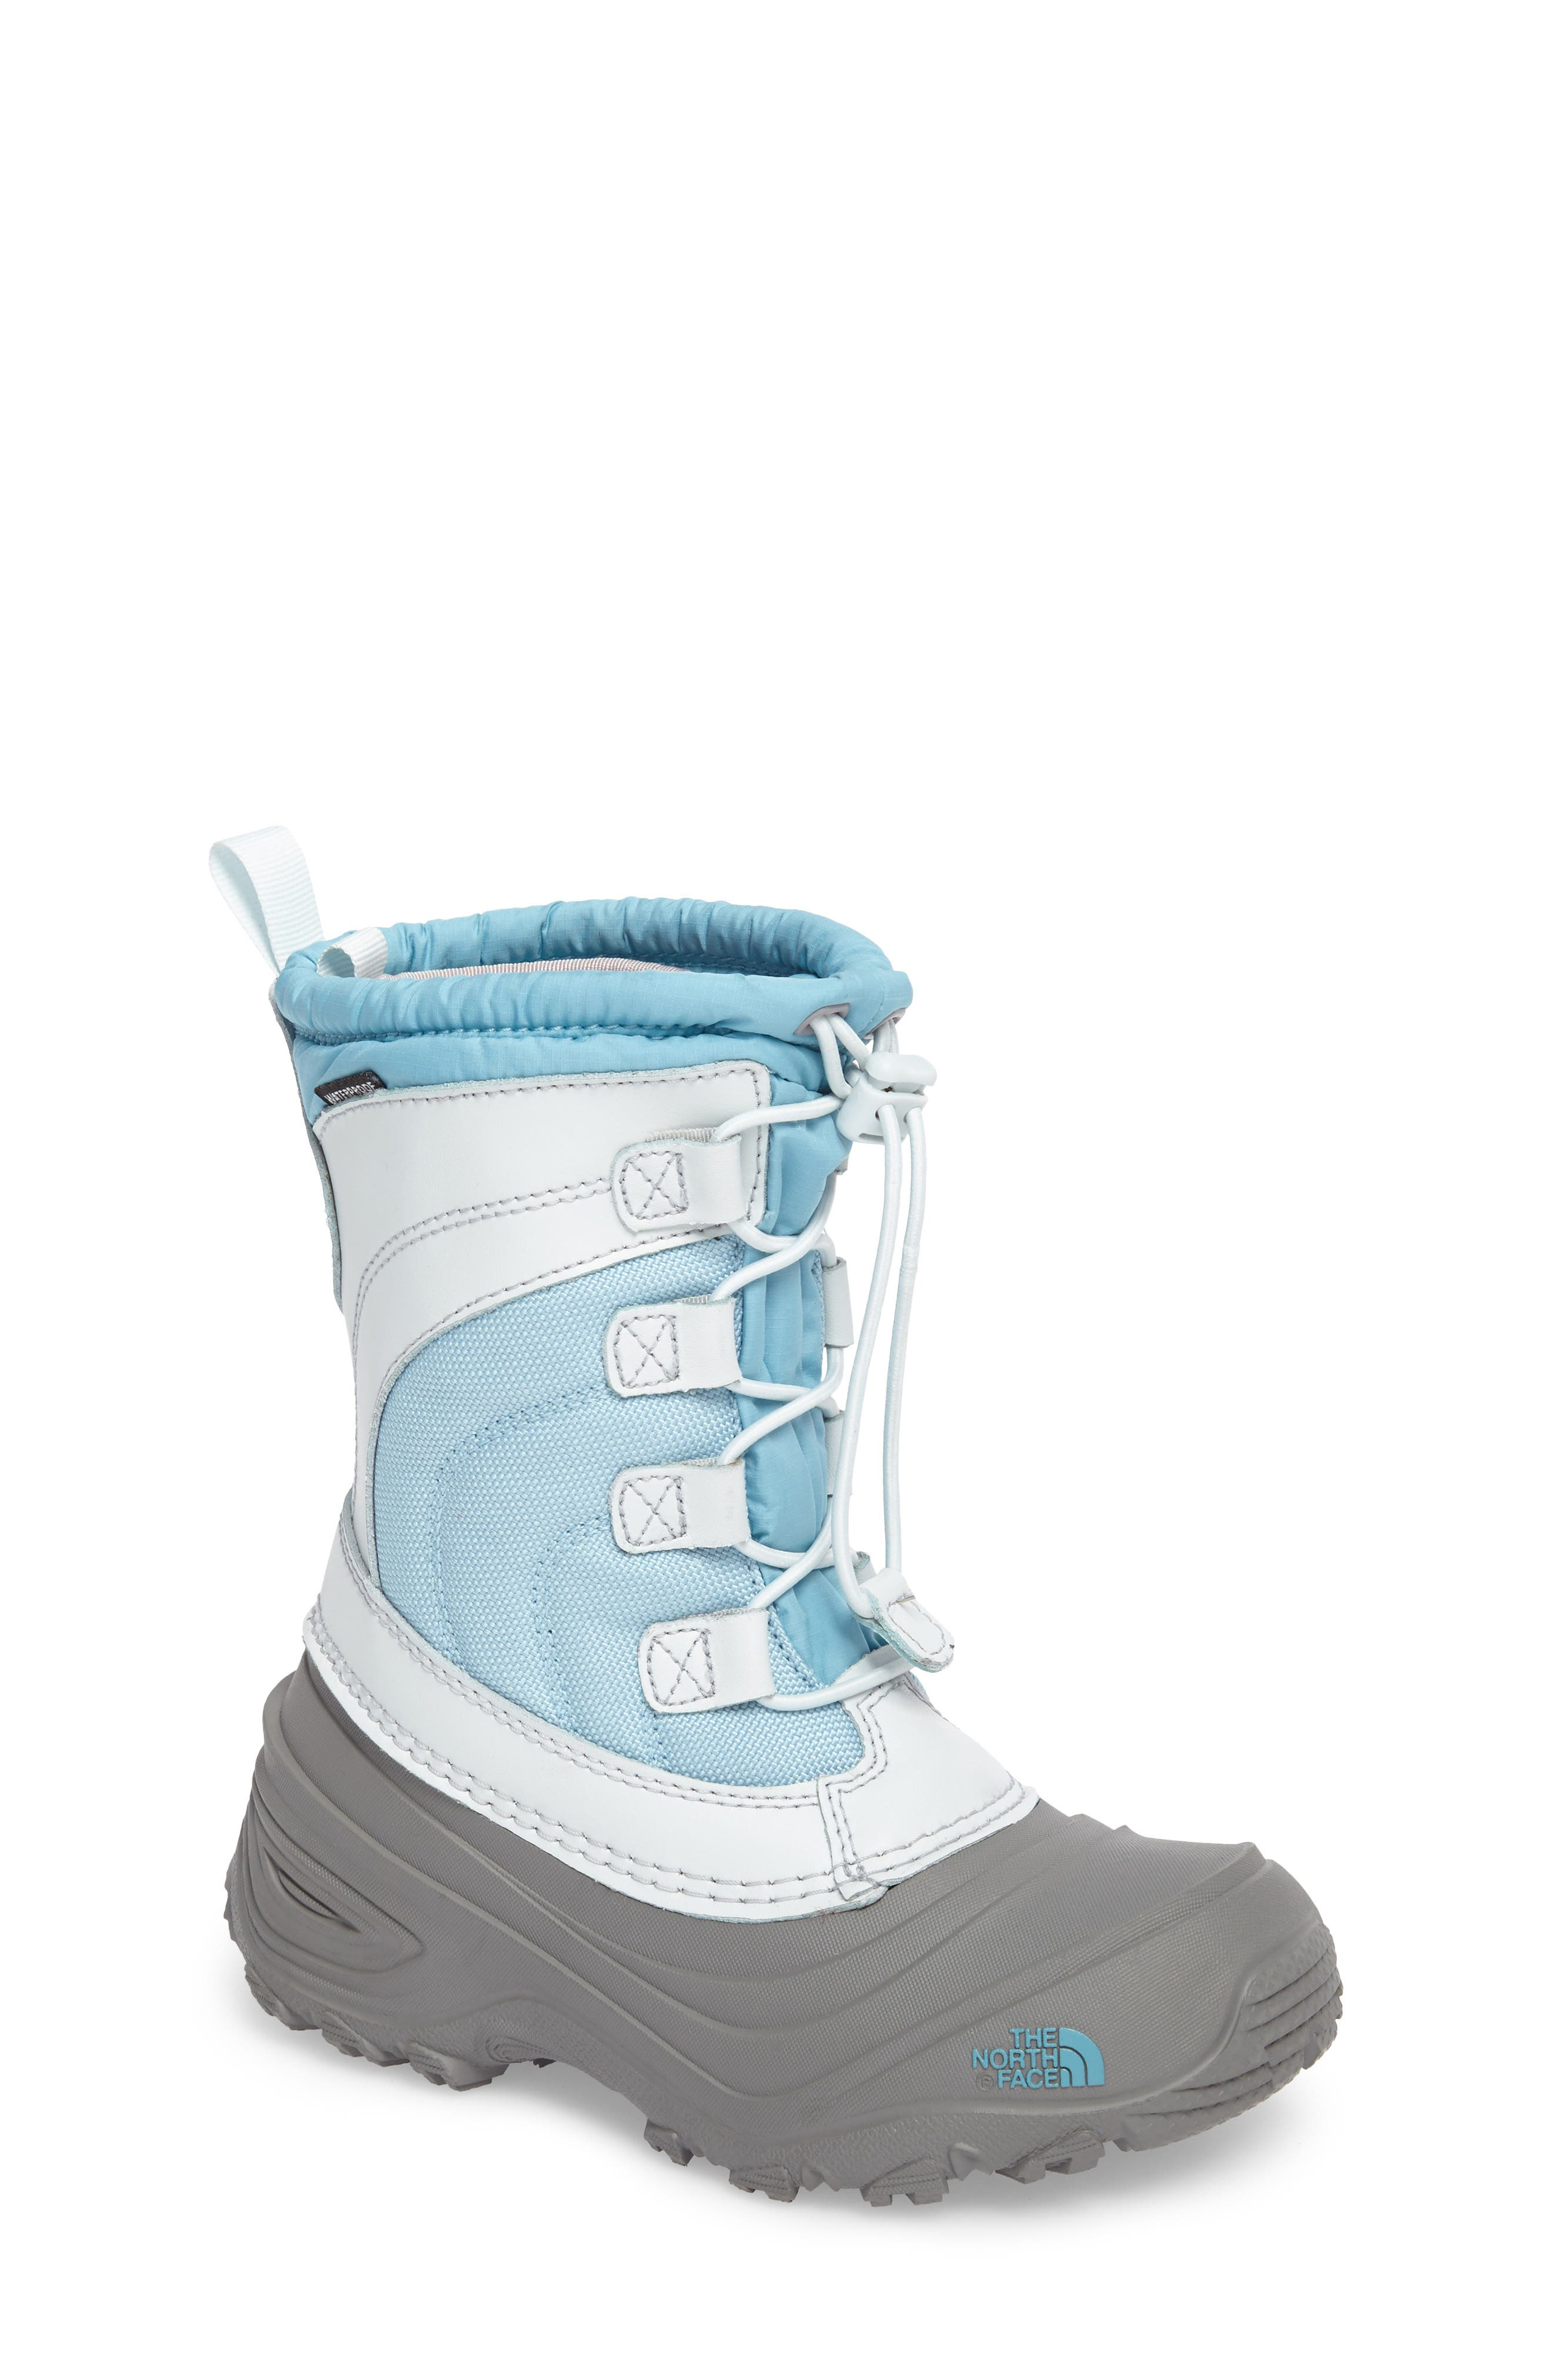 Alpenglow IV Waterproof Insulated Winter Boot,                         Main,                         color, Blizzard Blue/ Ice Blue